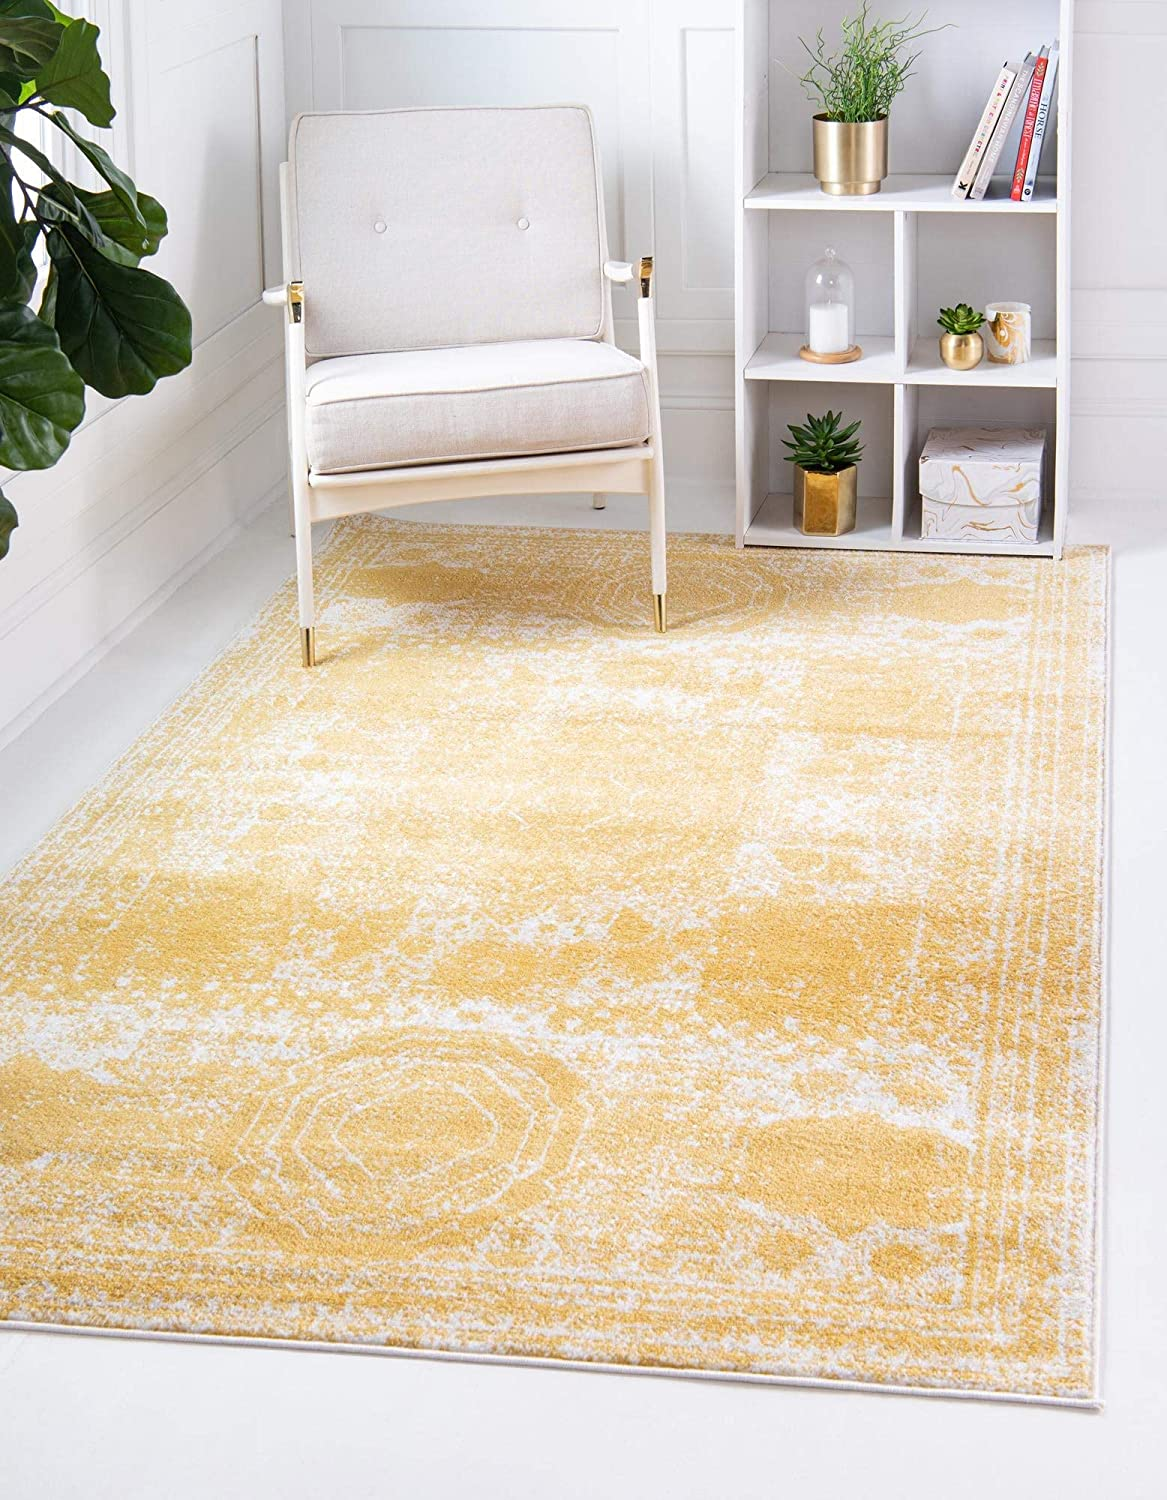 ! Super beauty product restock quality top! Rugs.com Dover Collection Rug – Low-Pile Yellow 5' Popular brand 3' x